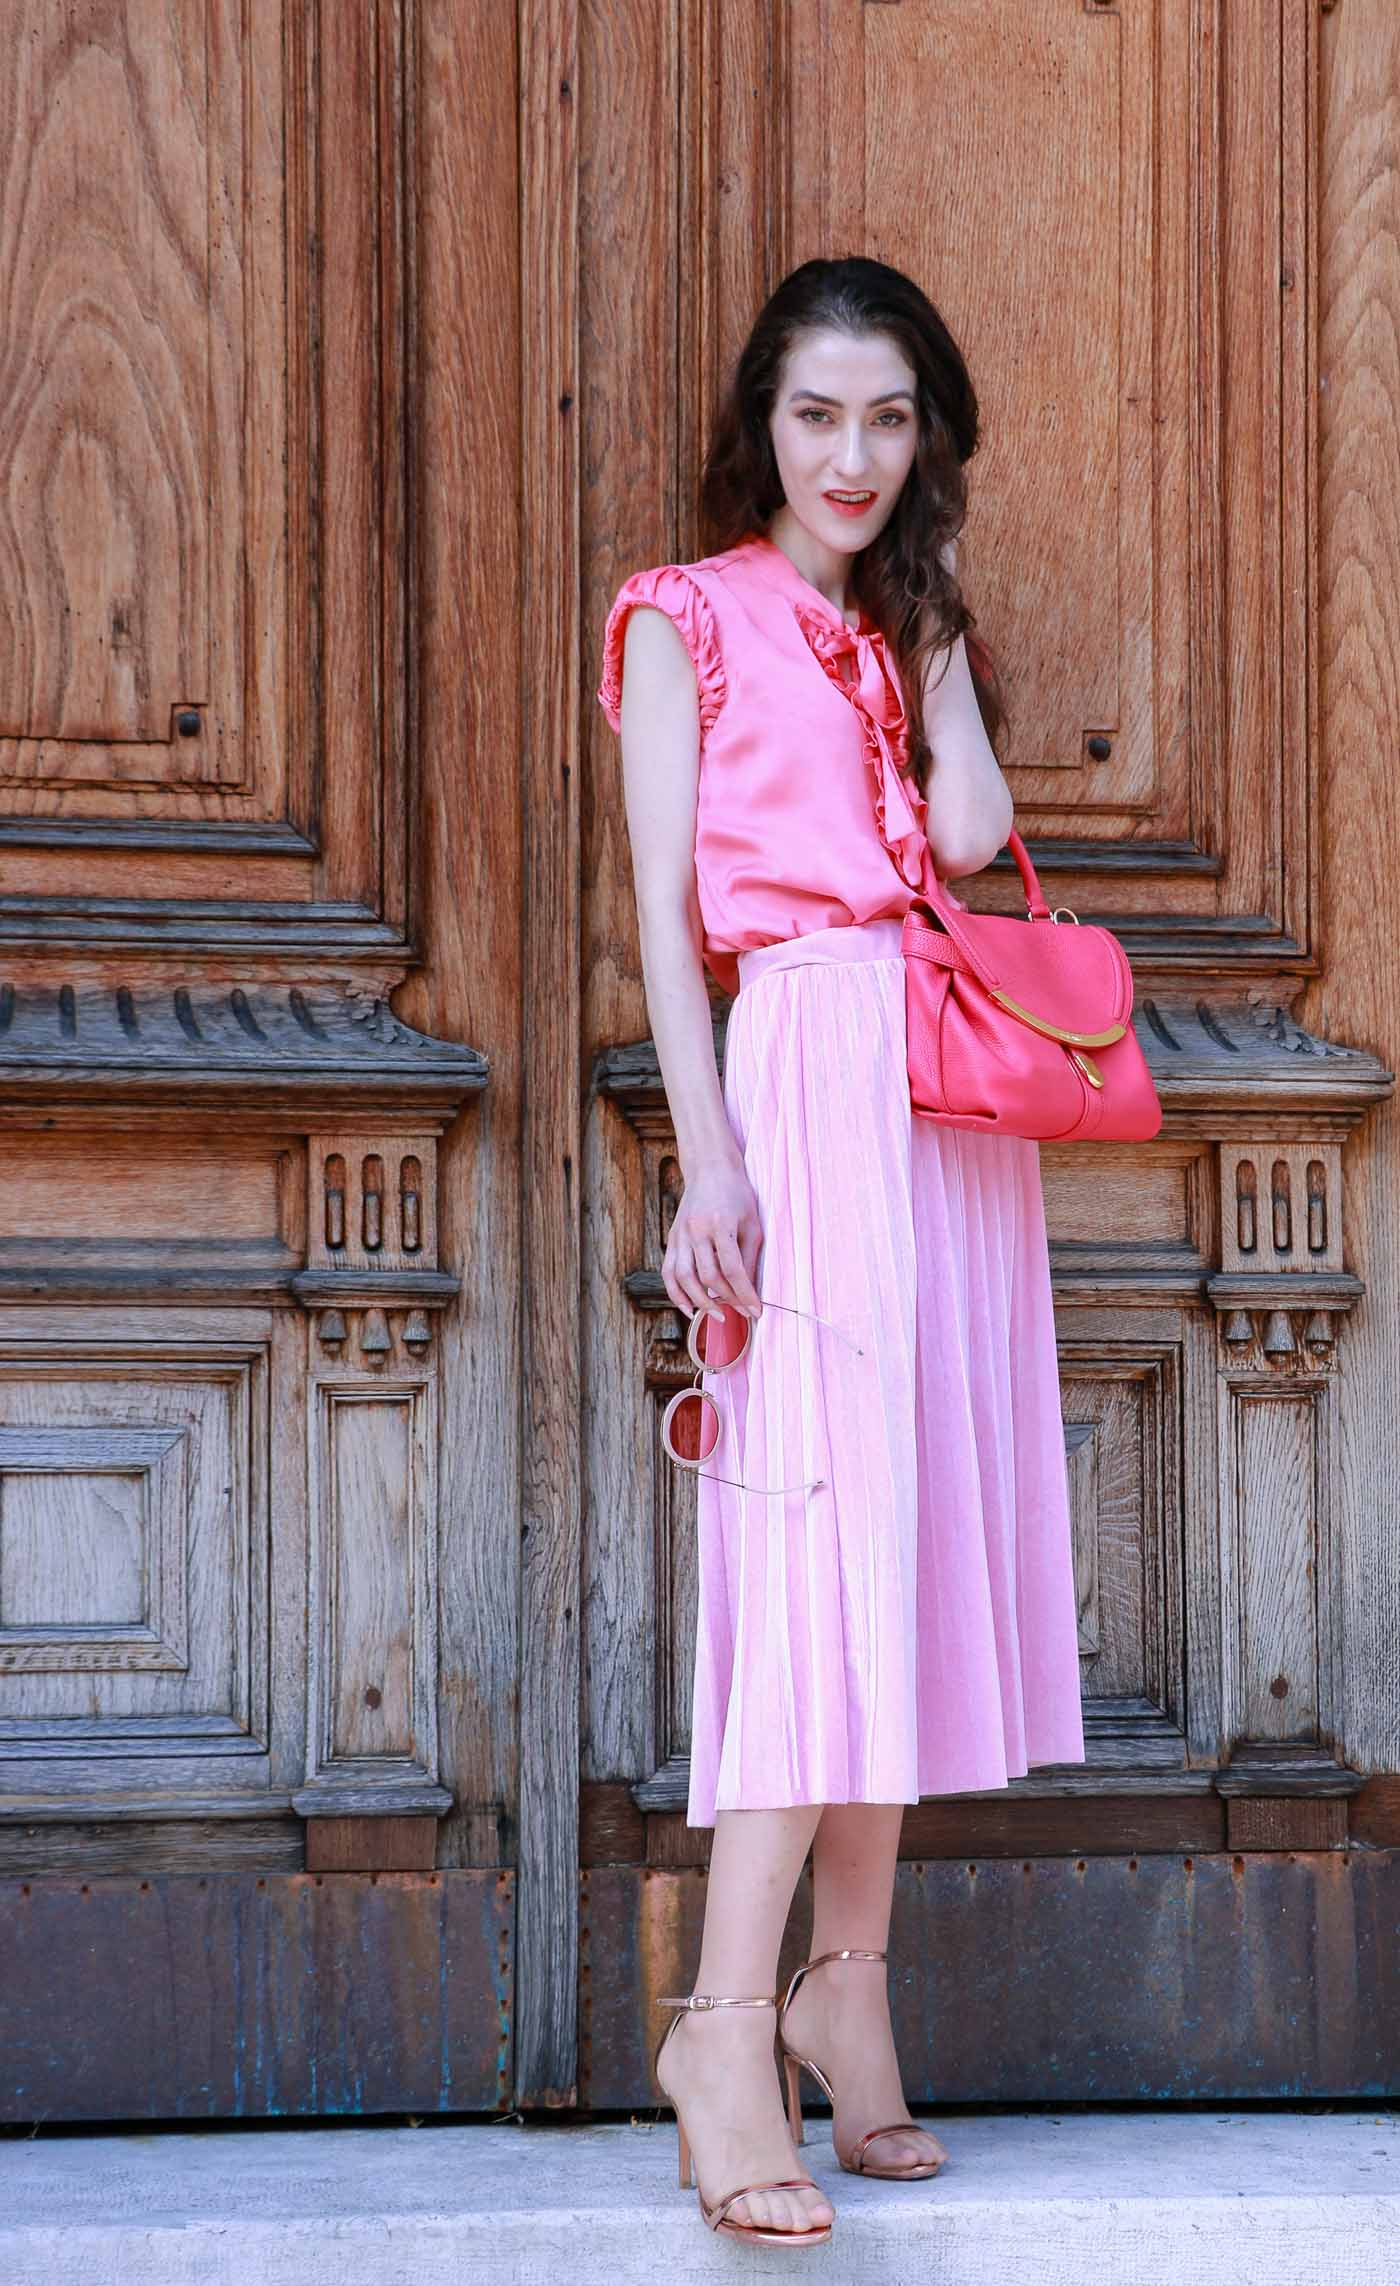 Fashion Blogger Veronika Lipar of Brunette from Wall Street wearing round pink sunglasses from Sunday Somewhere, pink pleated midi skirt, pink top, hot pink top handle bag and metallic rose gold sandals when leaving home